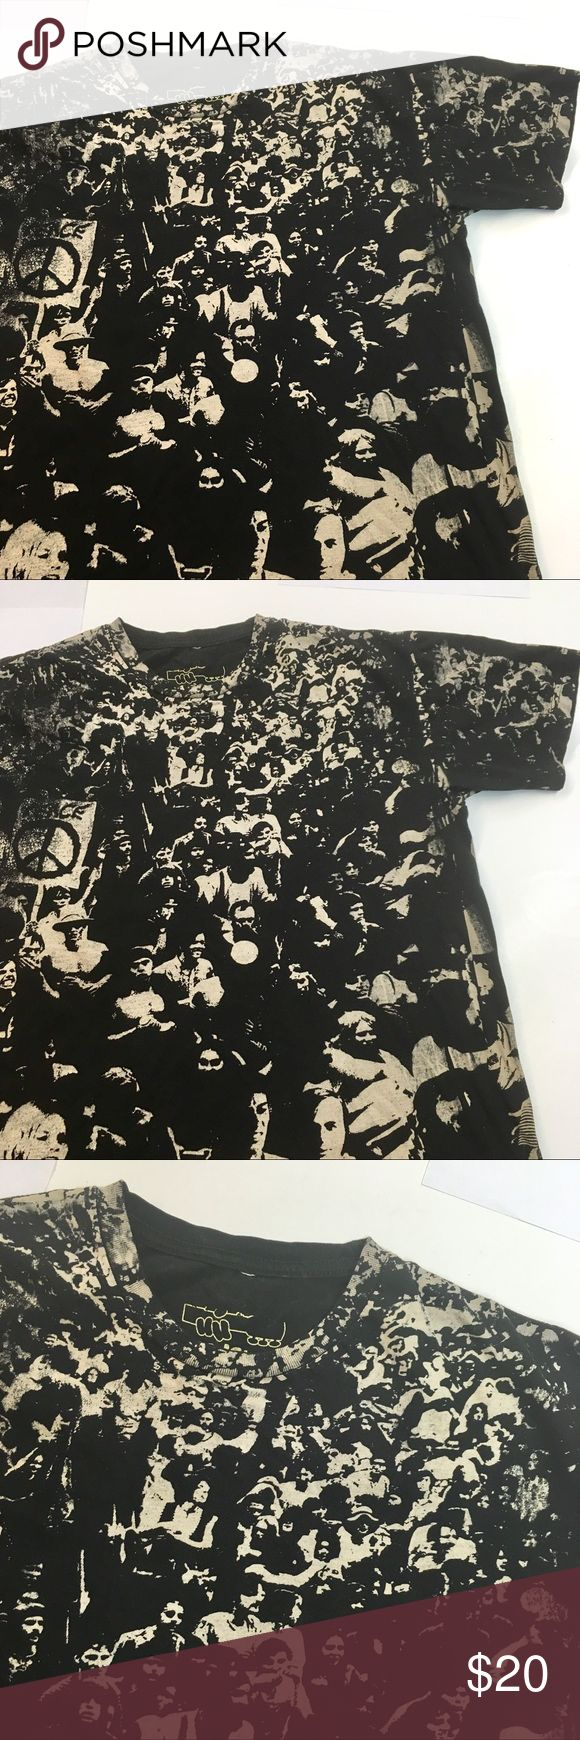 """Woodstock Concert Graphic T Shirt This is a graphic T Shirt by Woodstock brand. Size Large. 100% cotton- width is 22"""" across and length is 25.5"""".  Awesome full body photo of the actual 1969 concert - this shirt was printed 2009. In the red circle photo you can see a manufacturer error. Shirt is in amazing condition. woodstock Shirts Tees - Short Sleeve"""